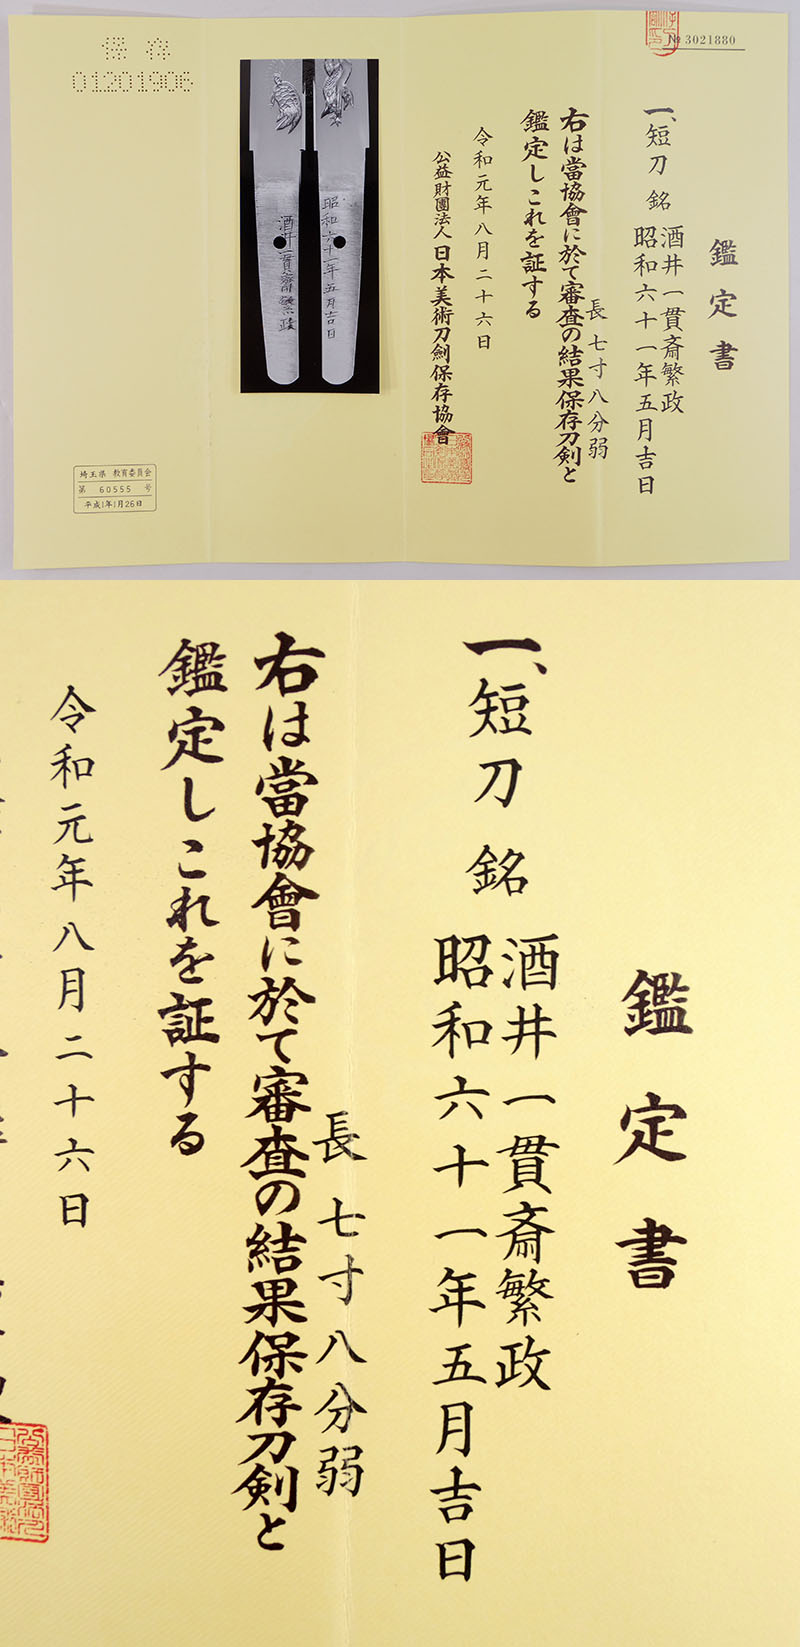 酒井一貫斎繁政 Picture of Certificate